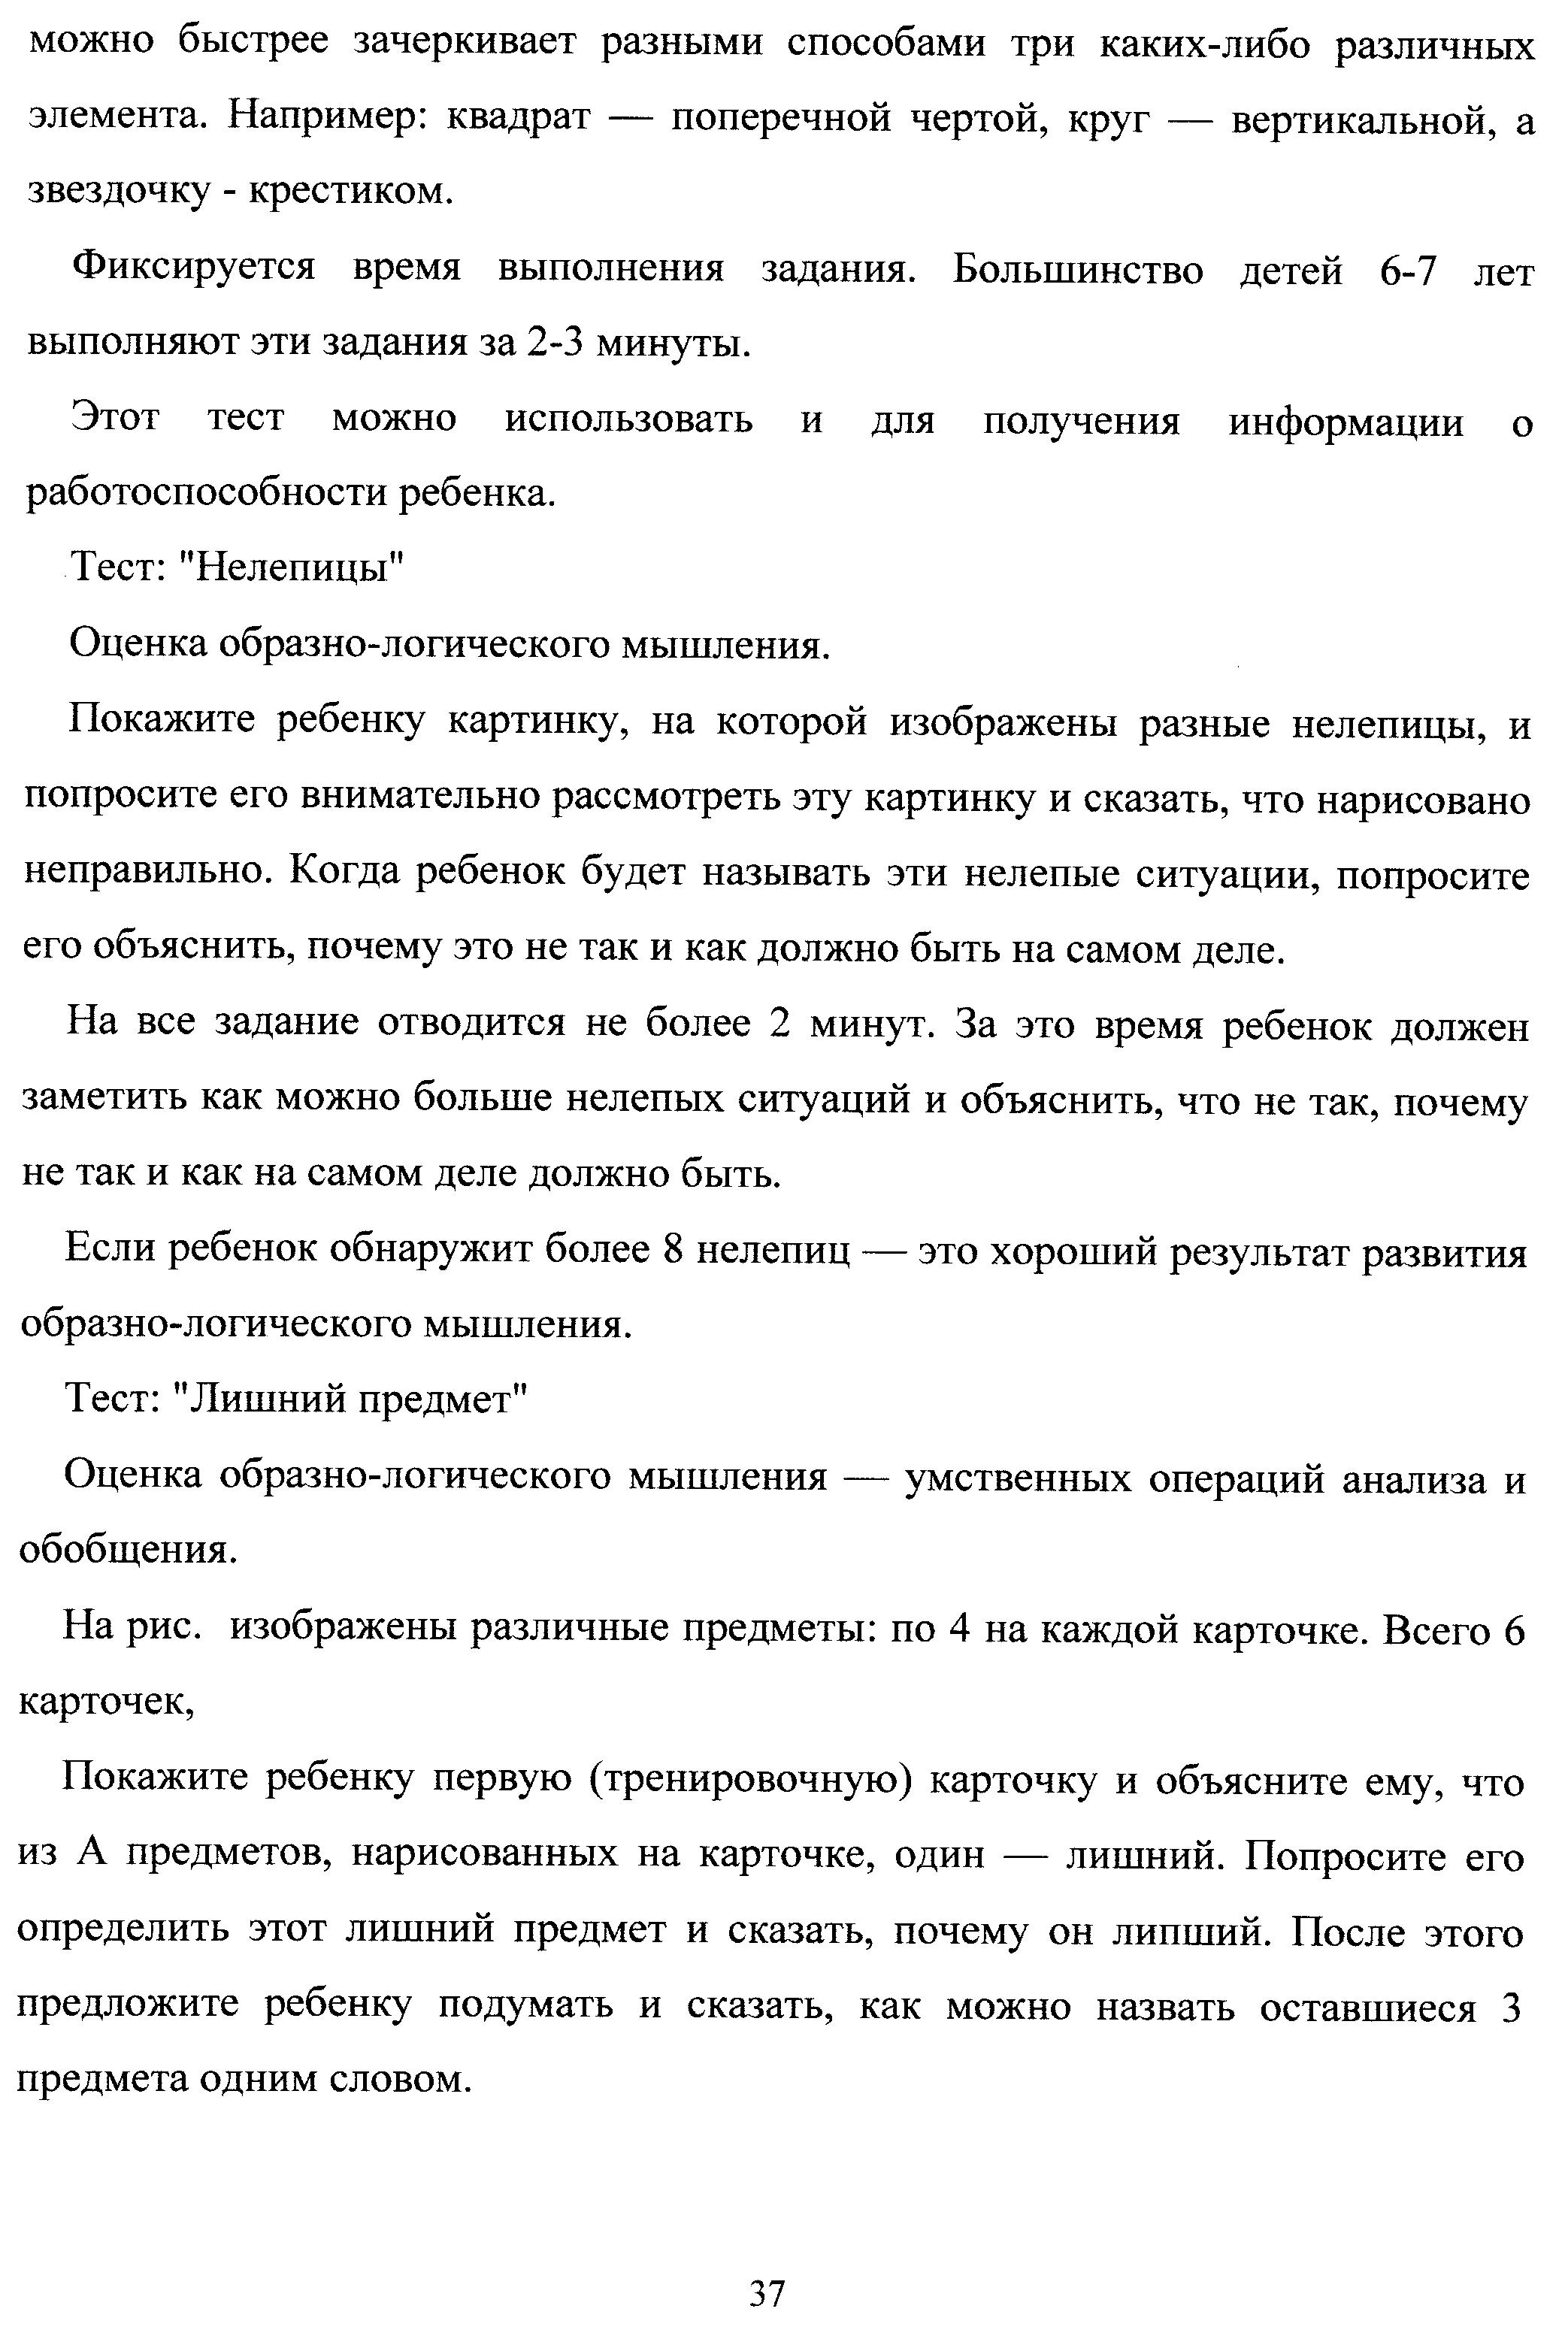 C:\Users\ЛАРИСА\Documents\Scanned Documents\Рисунок (141).jpg